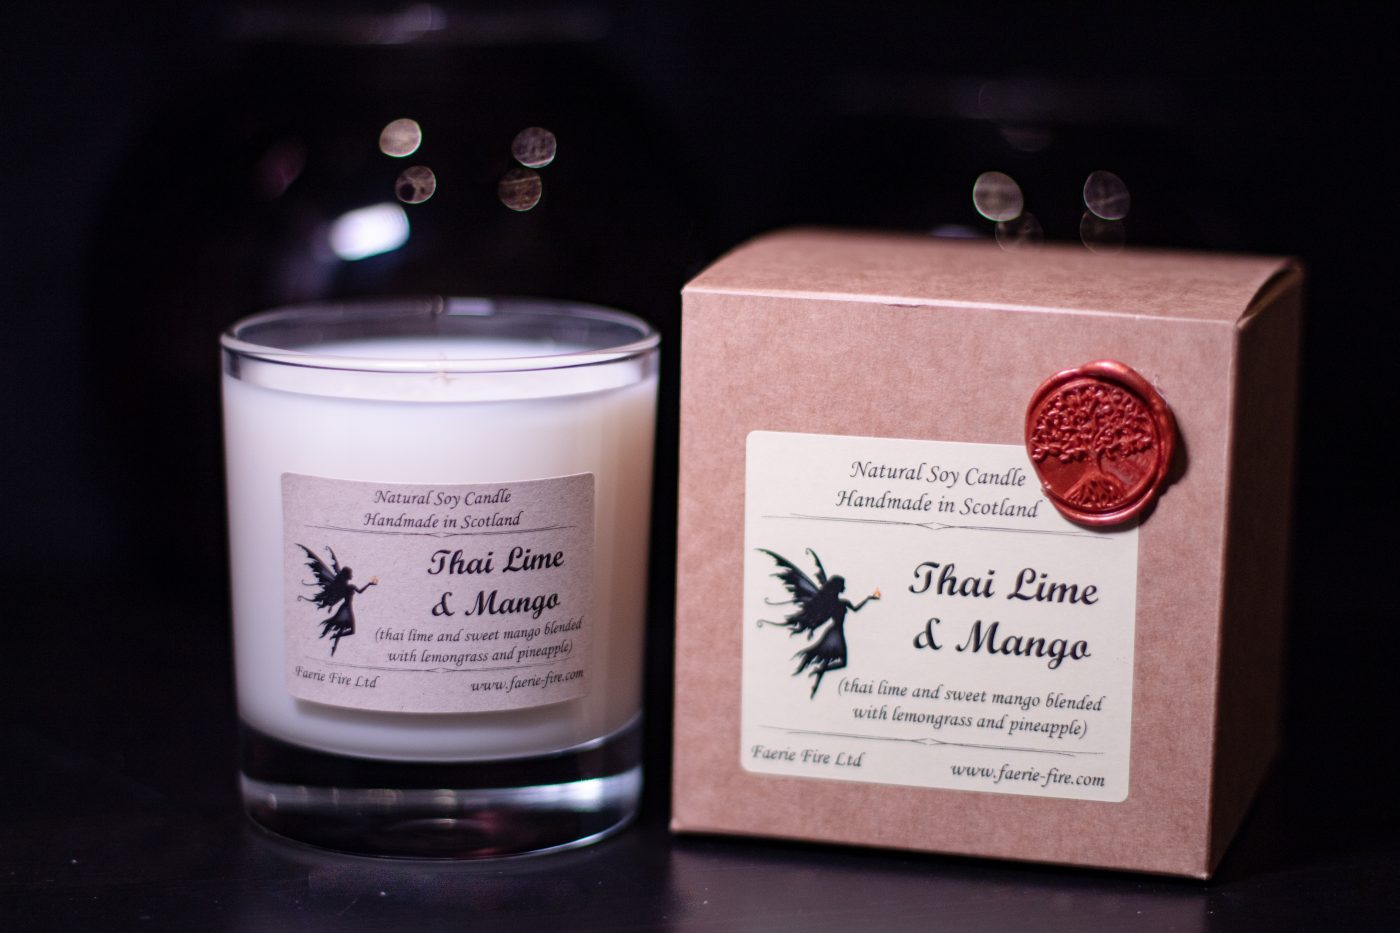 Thai lime and mango fragranced white soy vegan candle in a clear glass jar, beside a gift box on a dark background